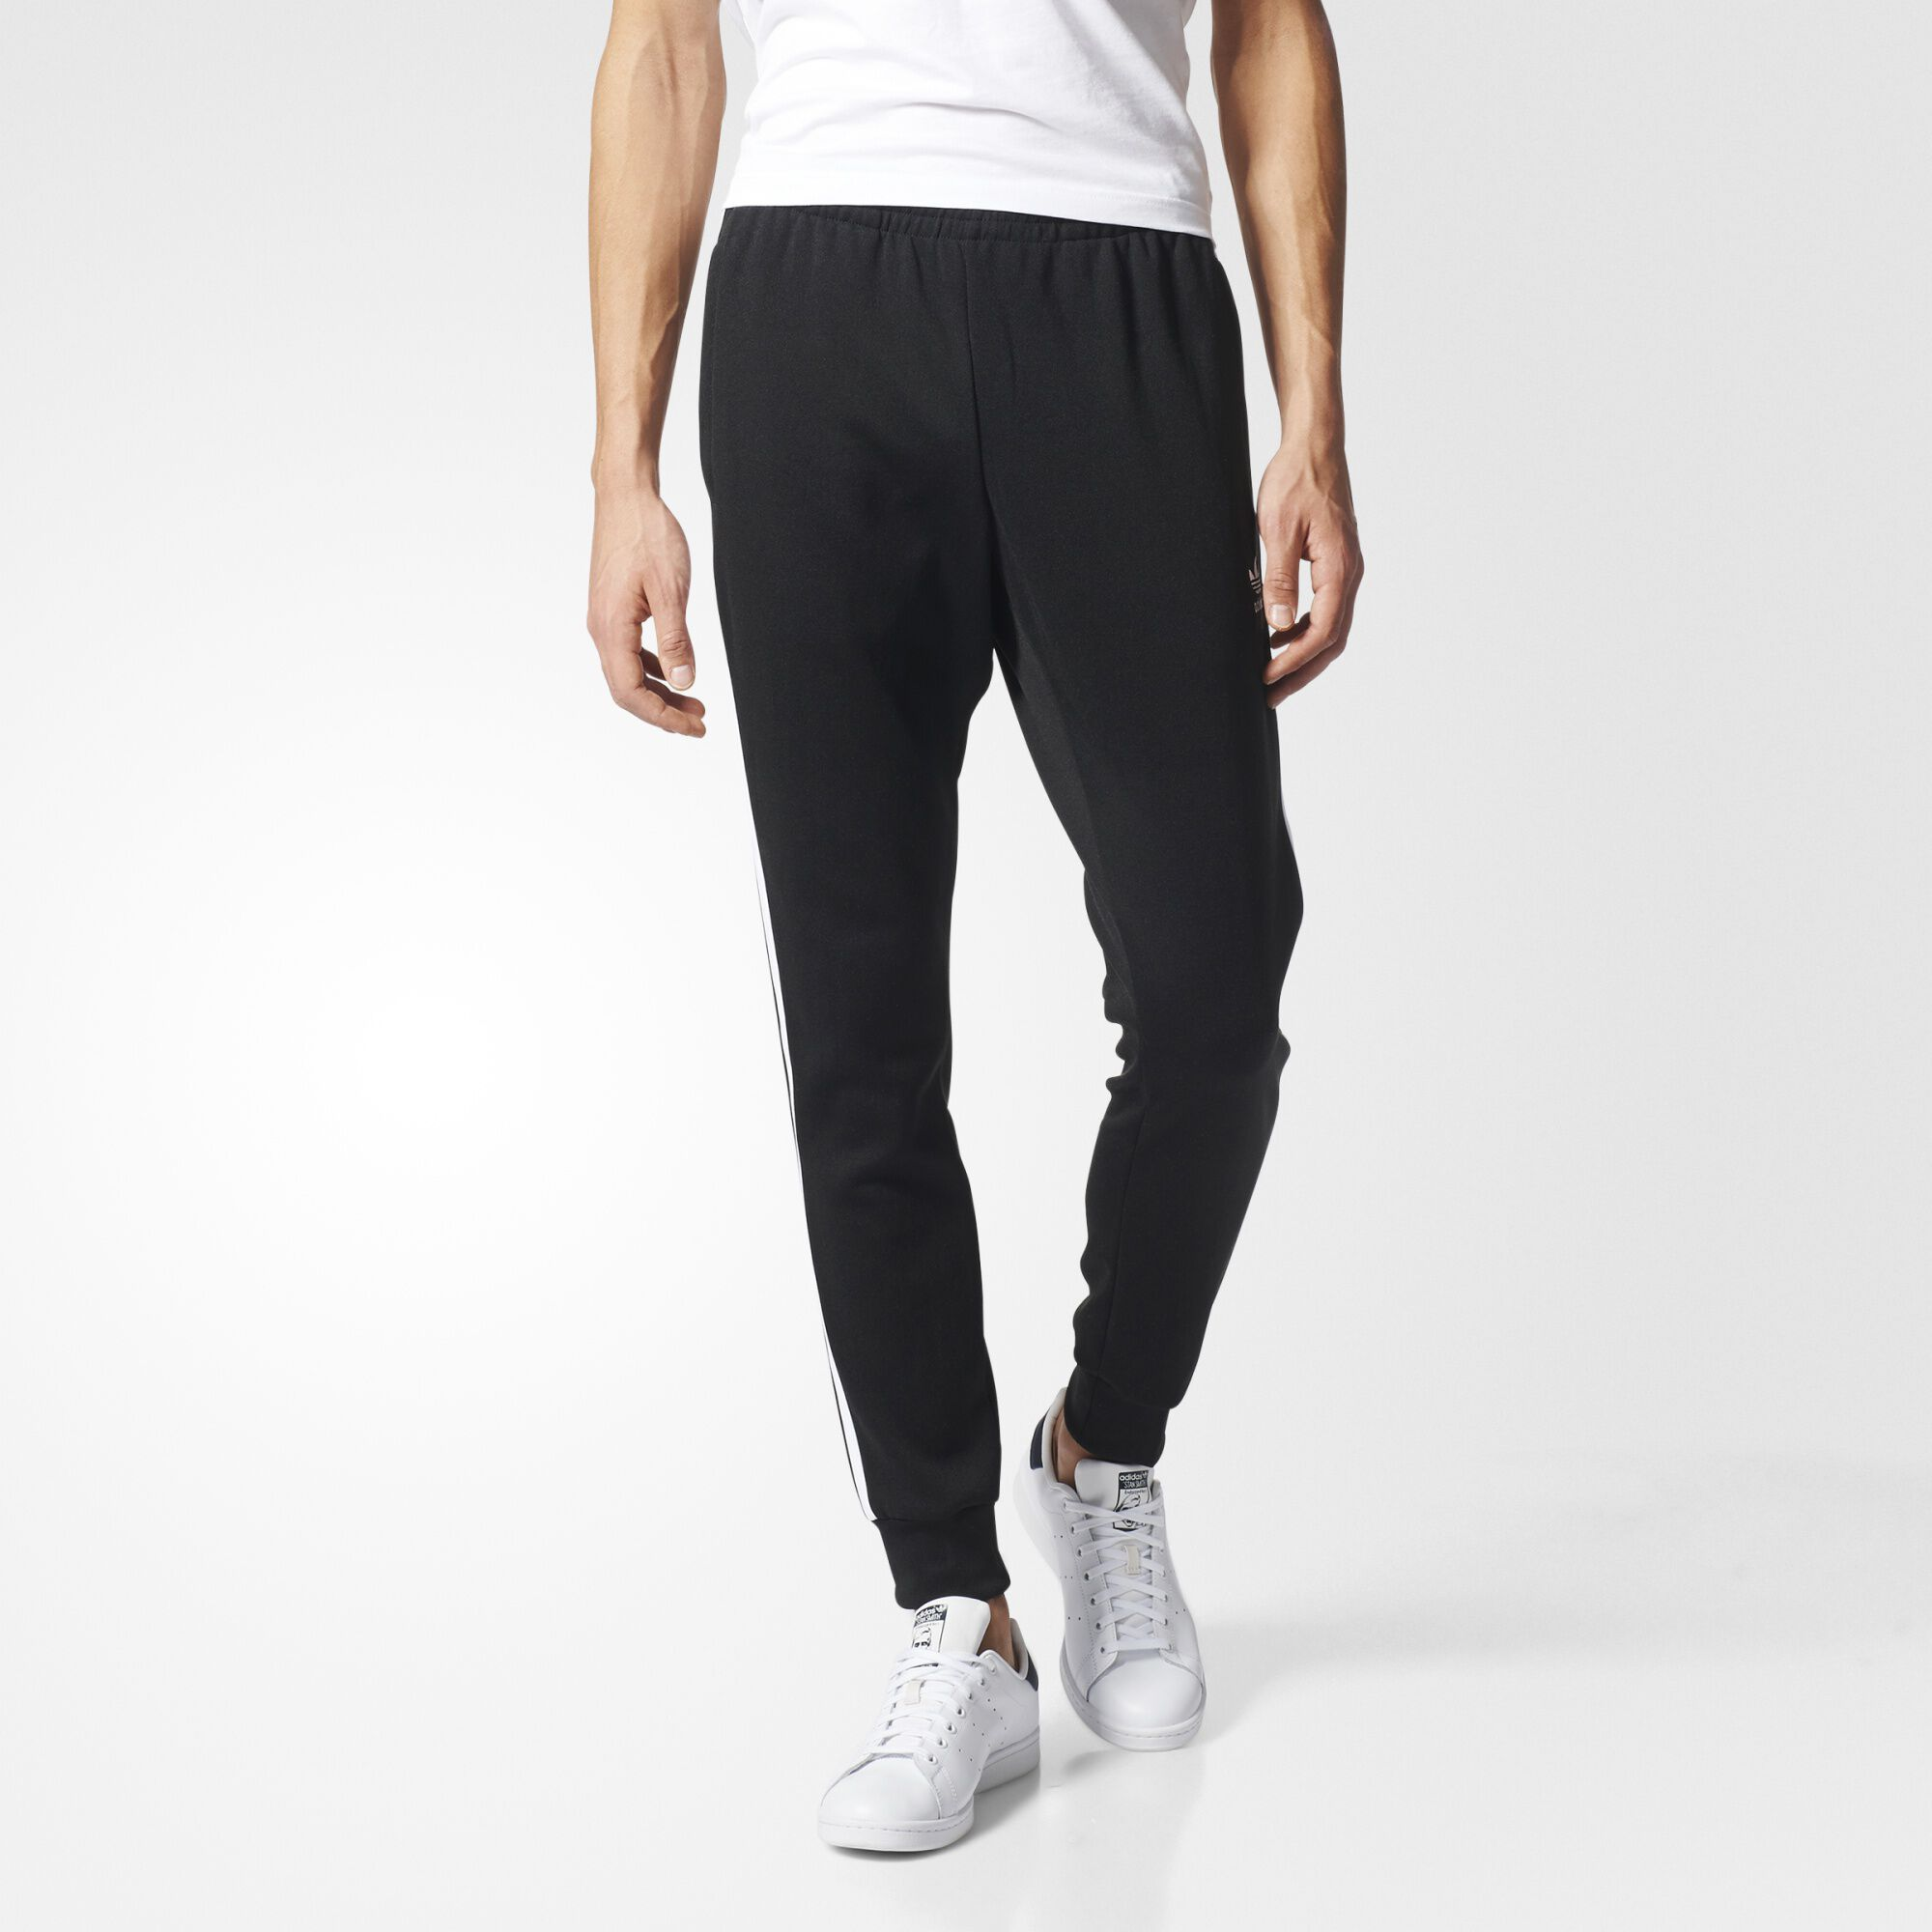 pantalon survetement adidas homme